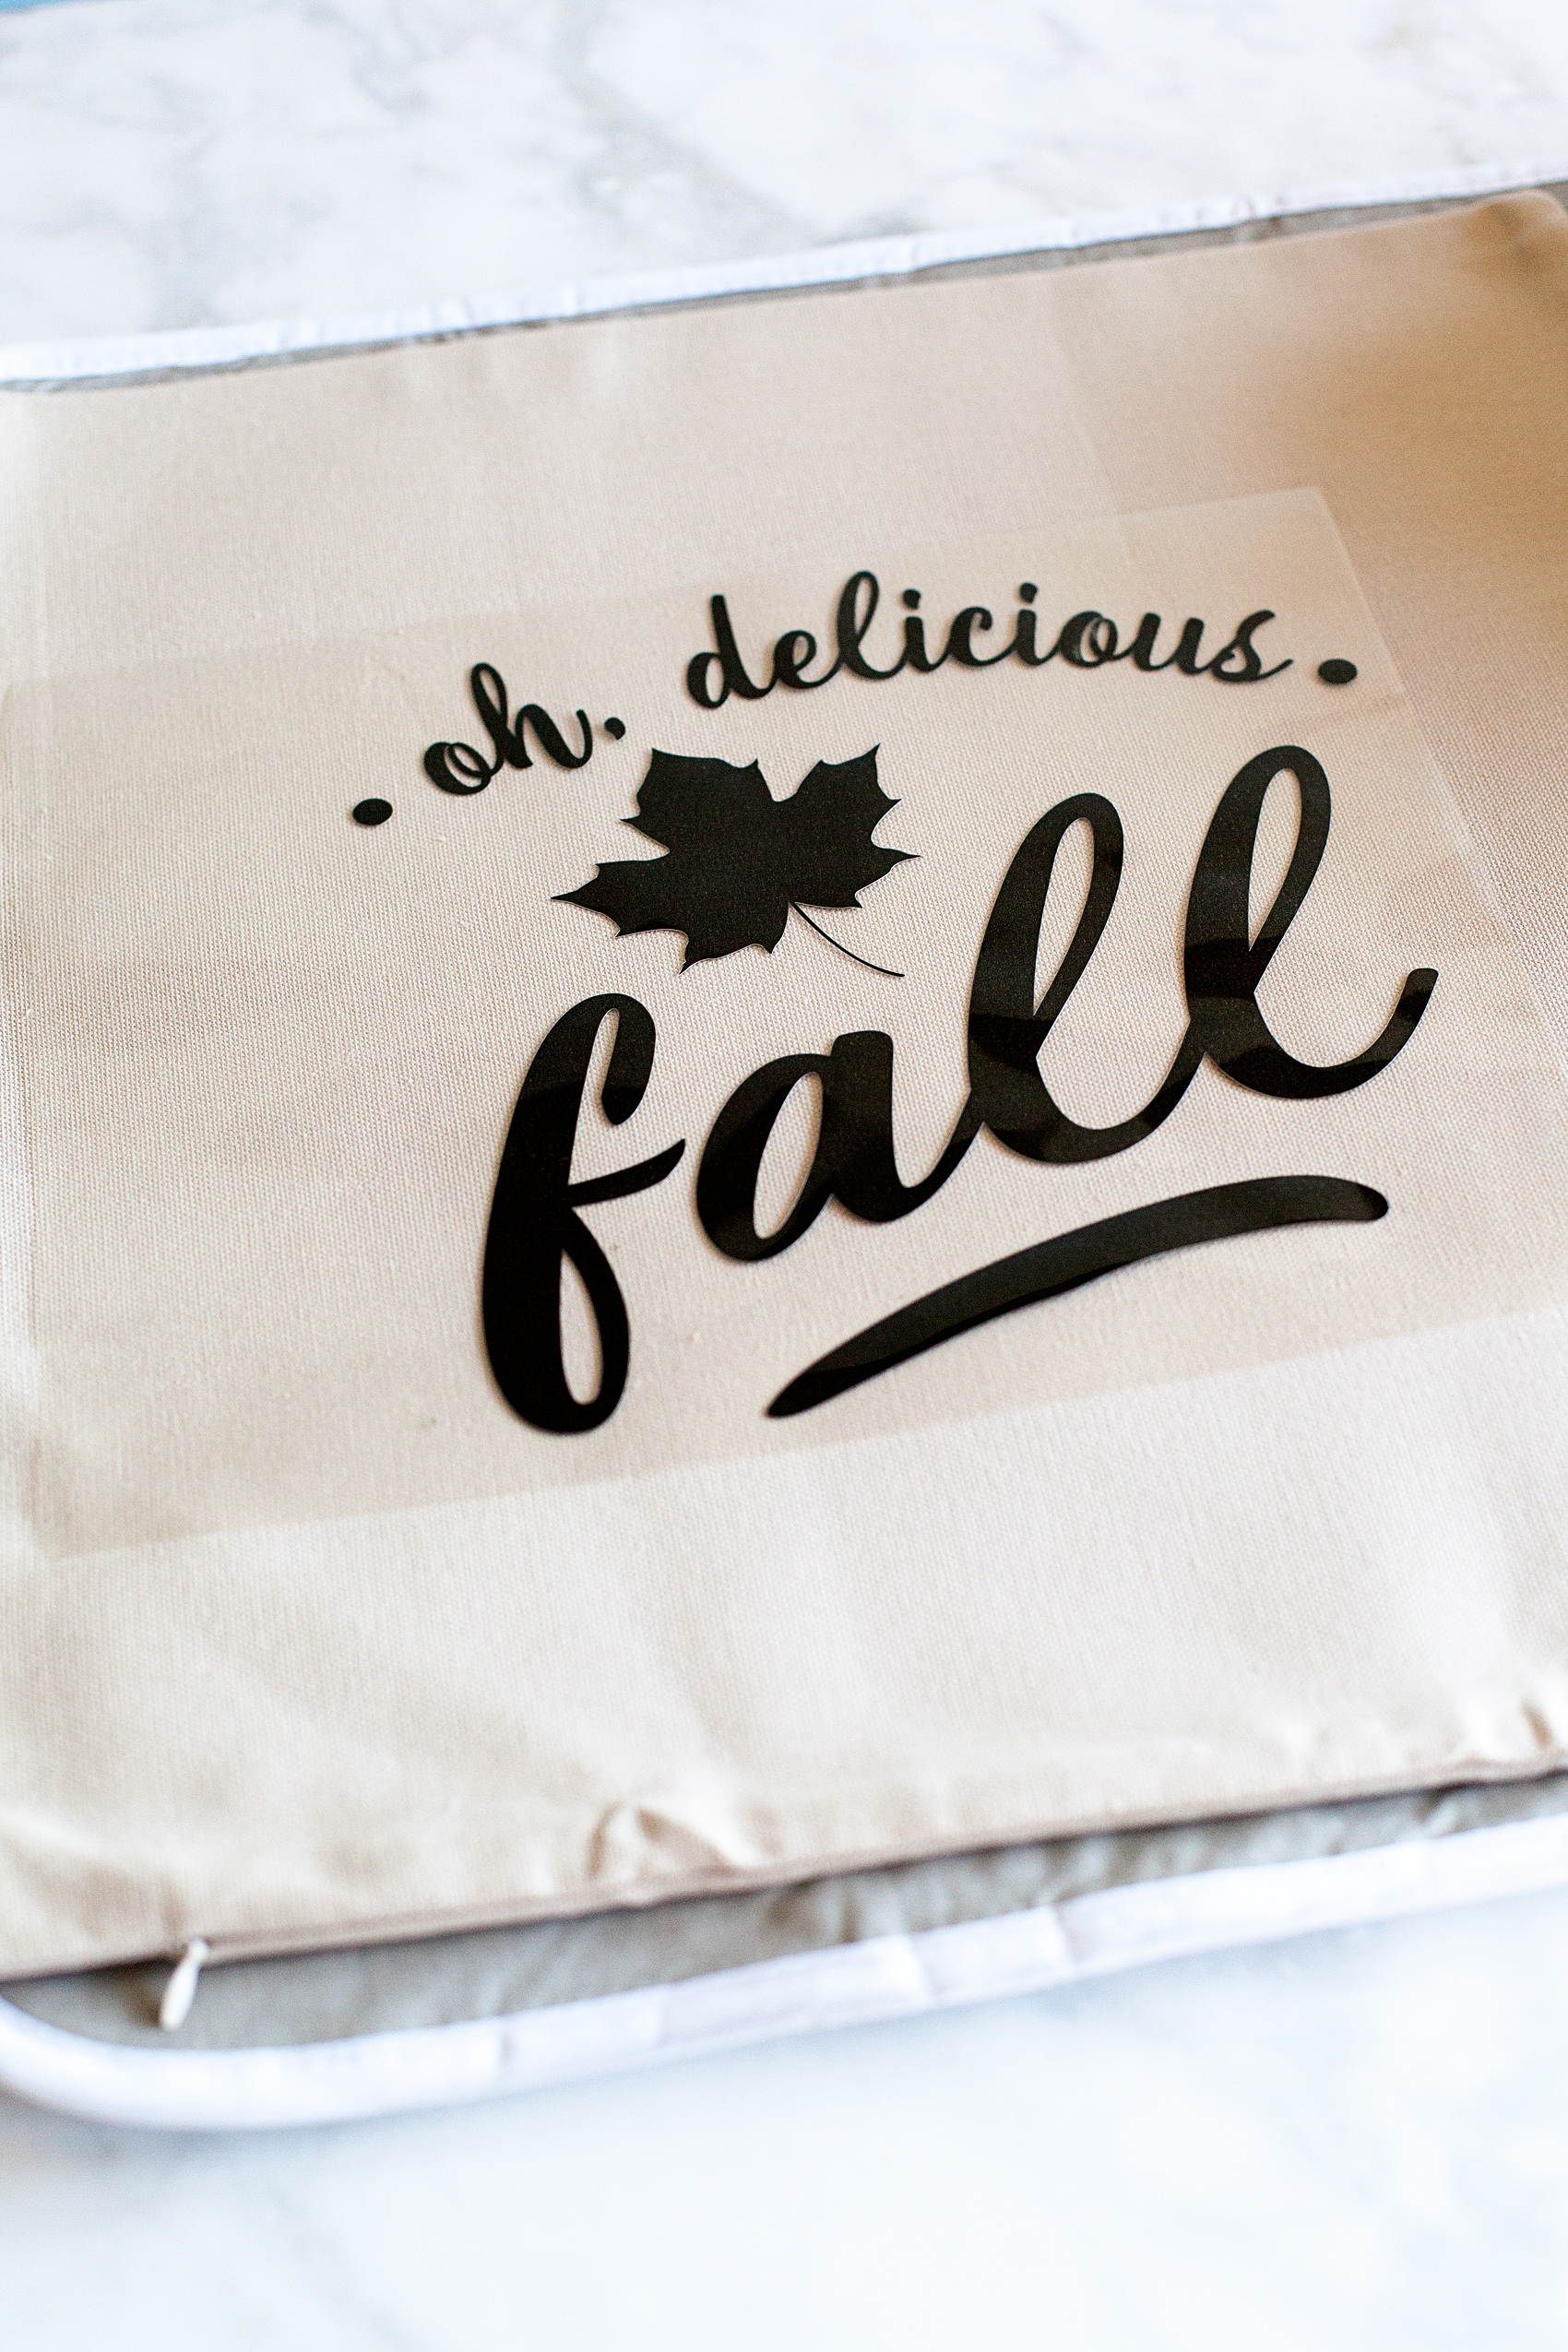 Oh,-Delicious-Fall-Pillow-Cricut-Maker-Cricut-Easy-Press-WhipperBerry-17